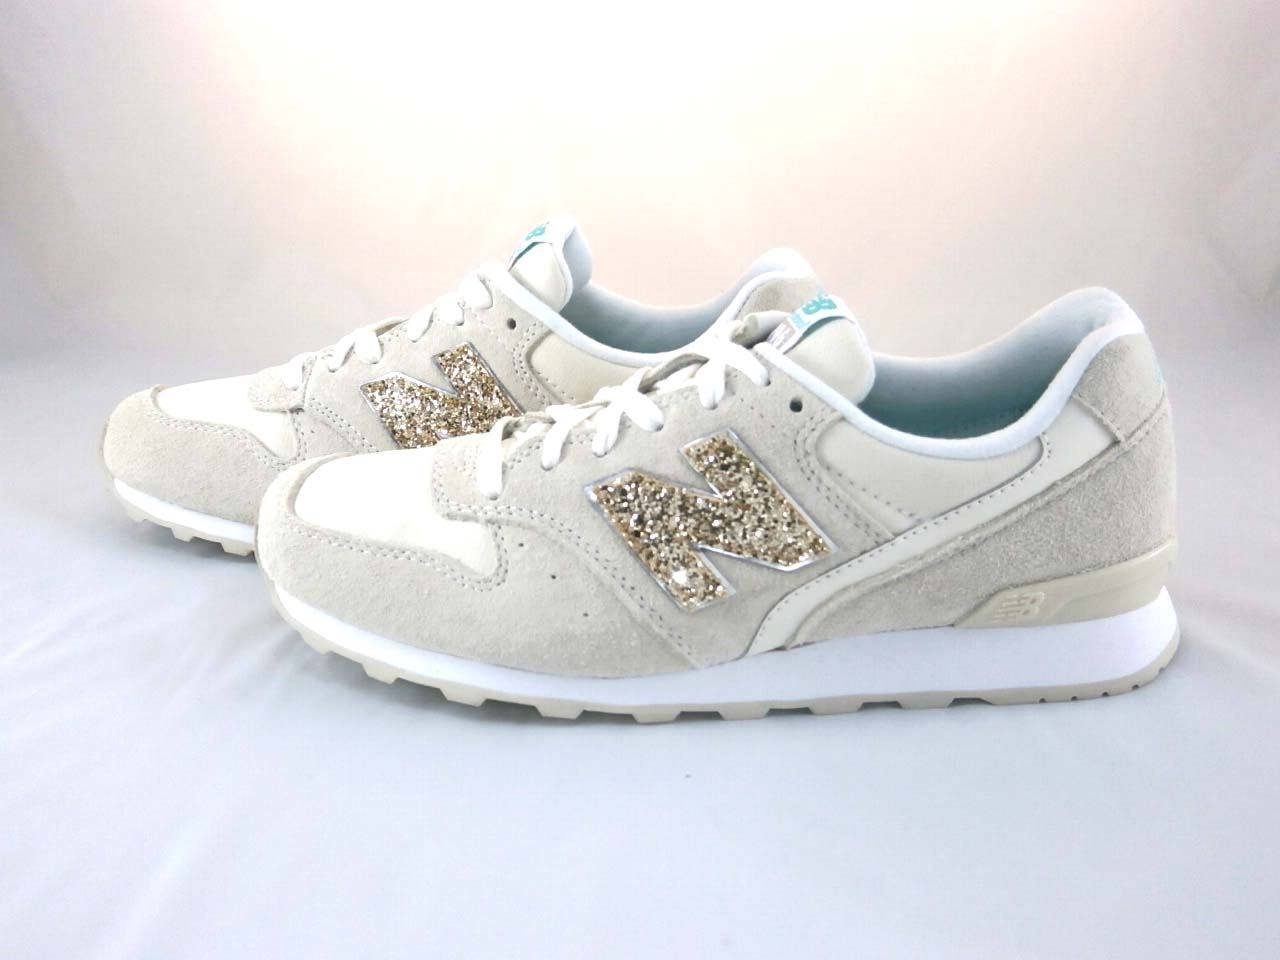 new balance donna nere brillantini